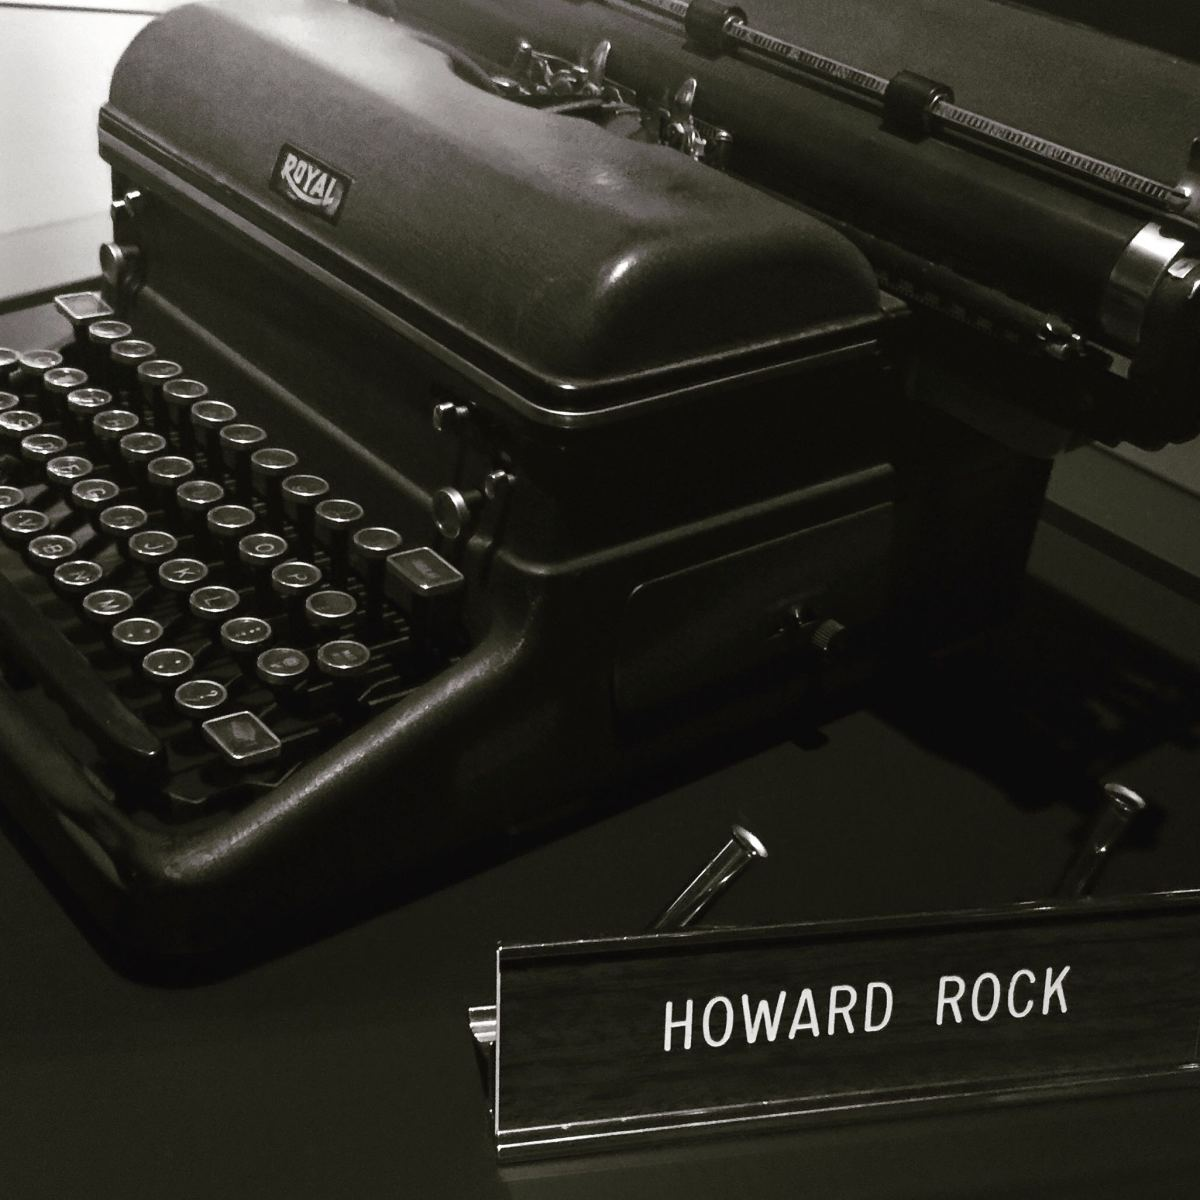 Howard Rock's typewriter and desk plate at the Anchorage Museum at Rasmuson Center.(Photo by Mark Trahant, Indian Country Today)